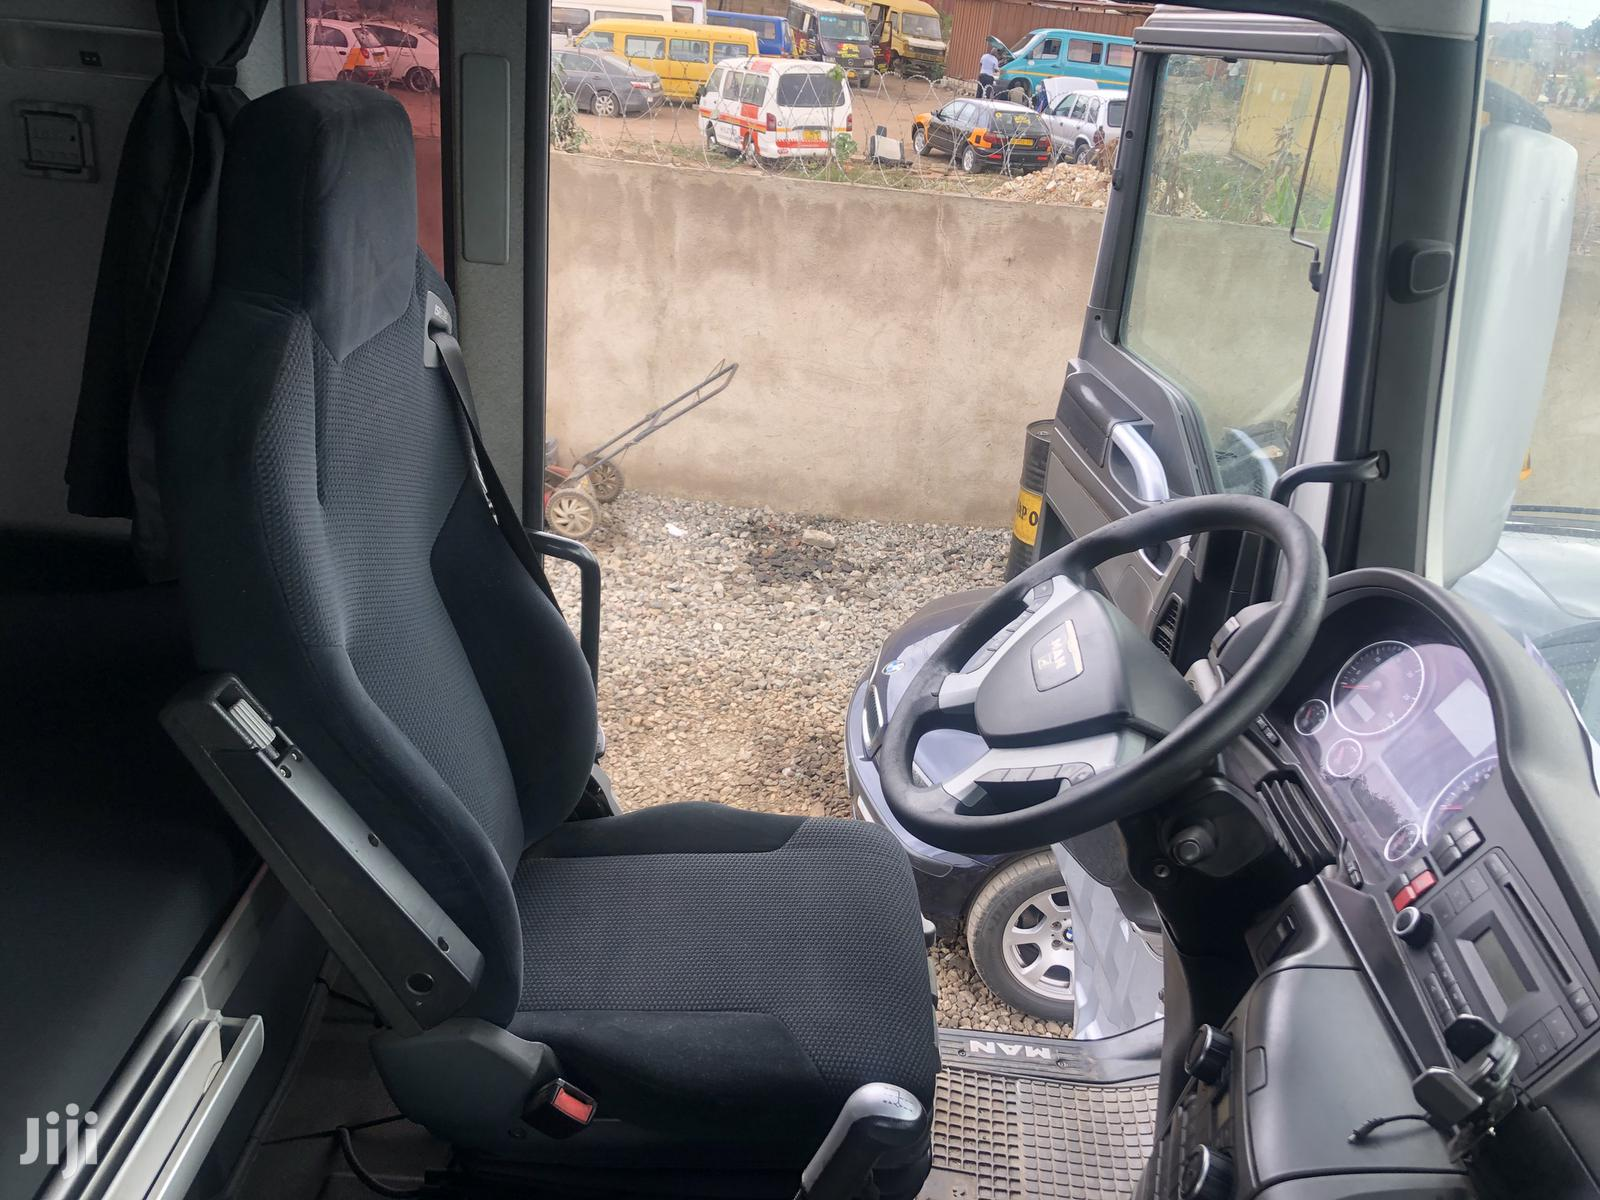 Diesel Home Used Trailer Head Truck For Sale 480,000gh | Trucks & Trailers for sale in Achimota, Greater Accra, Ghana